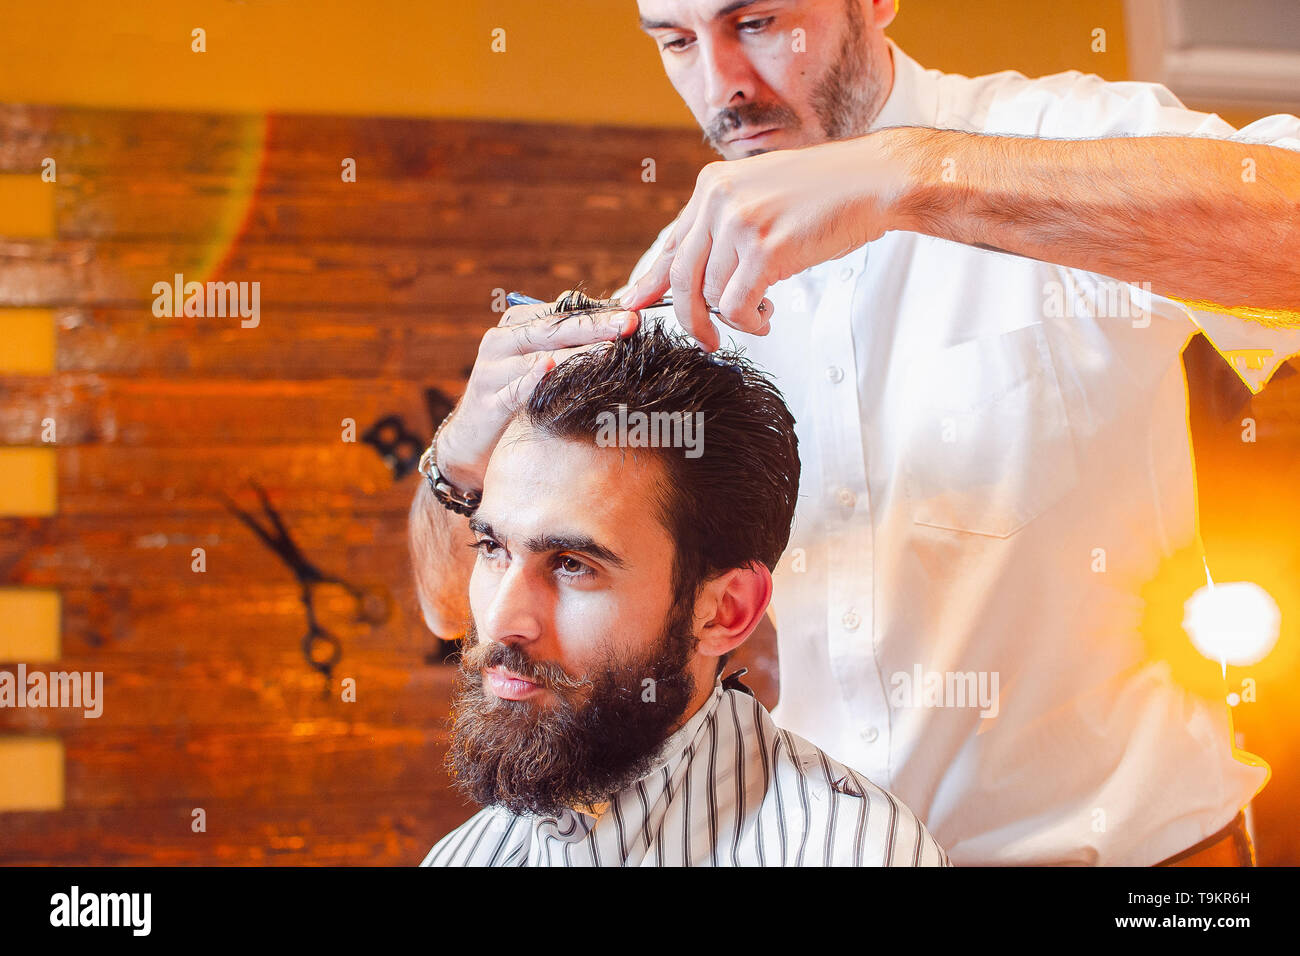 Barber shears hair on her head with a young handsome guy with a beard and mustache. Barber Shop. - Stock Image